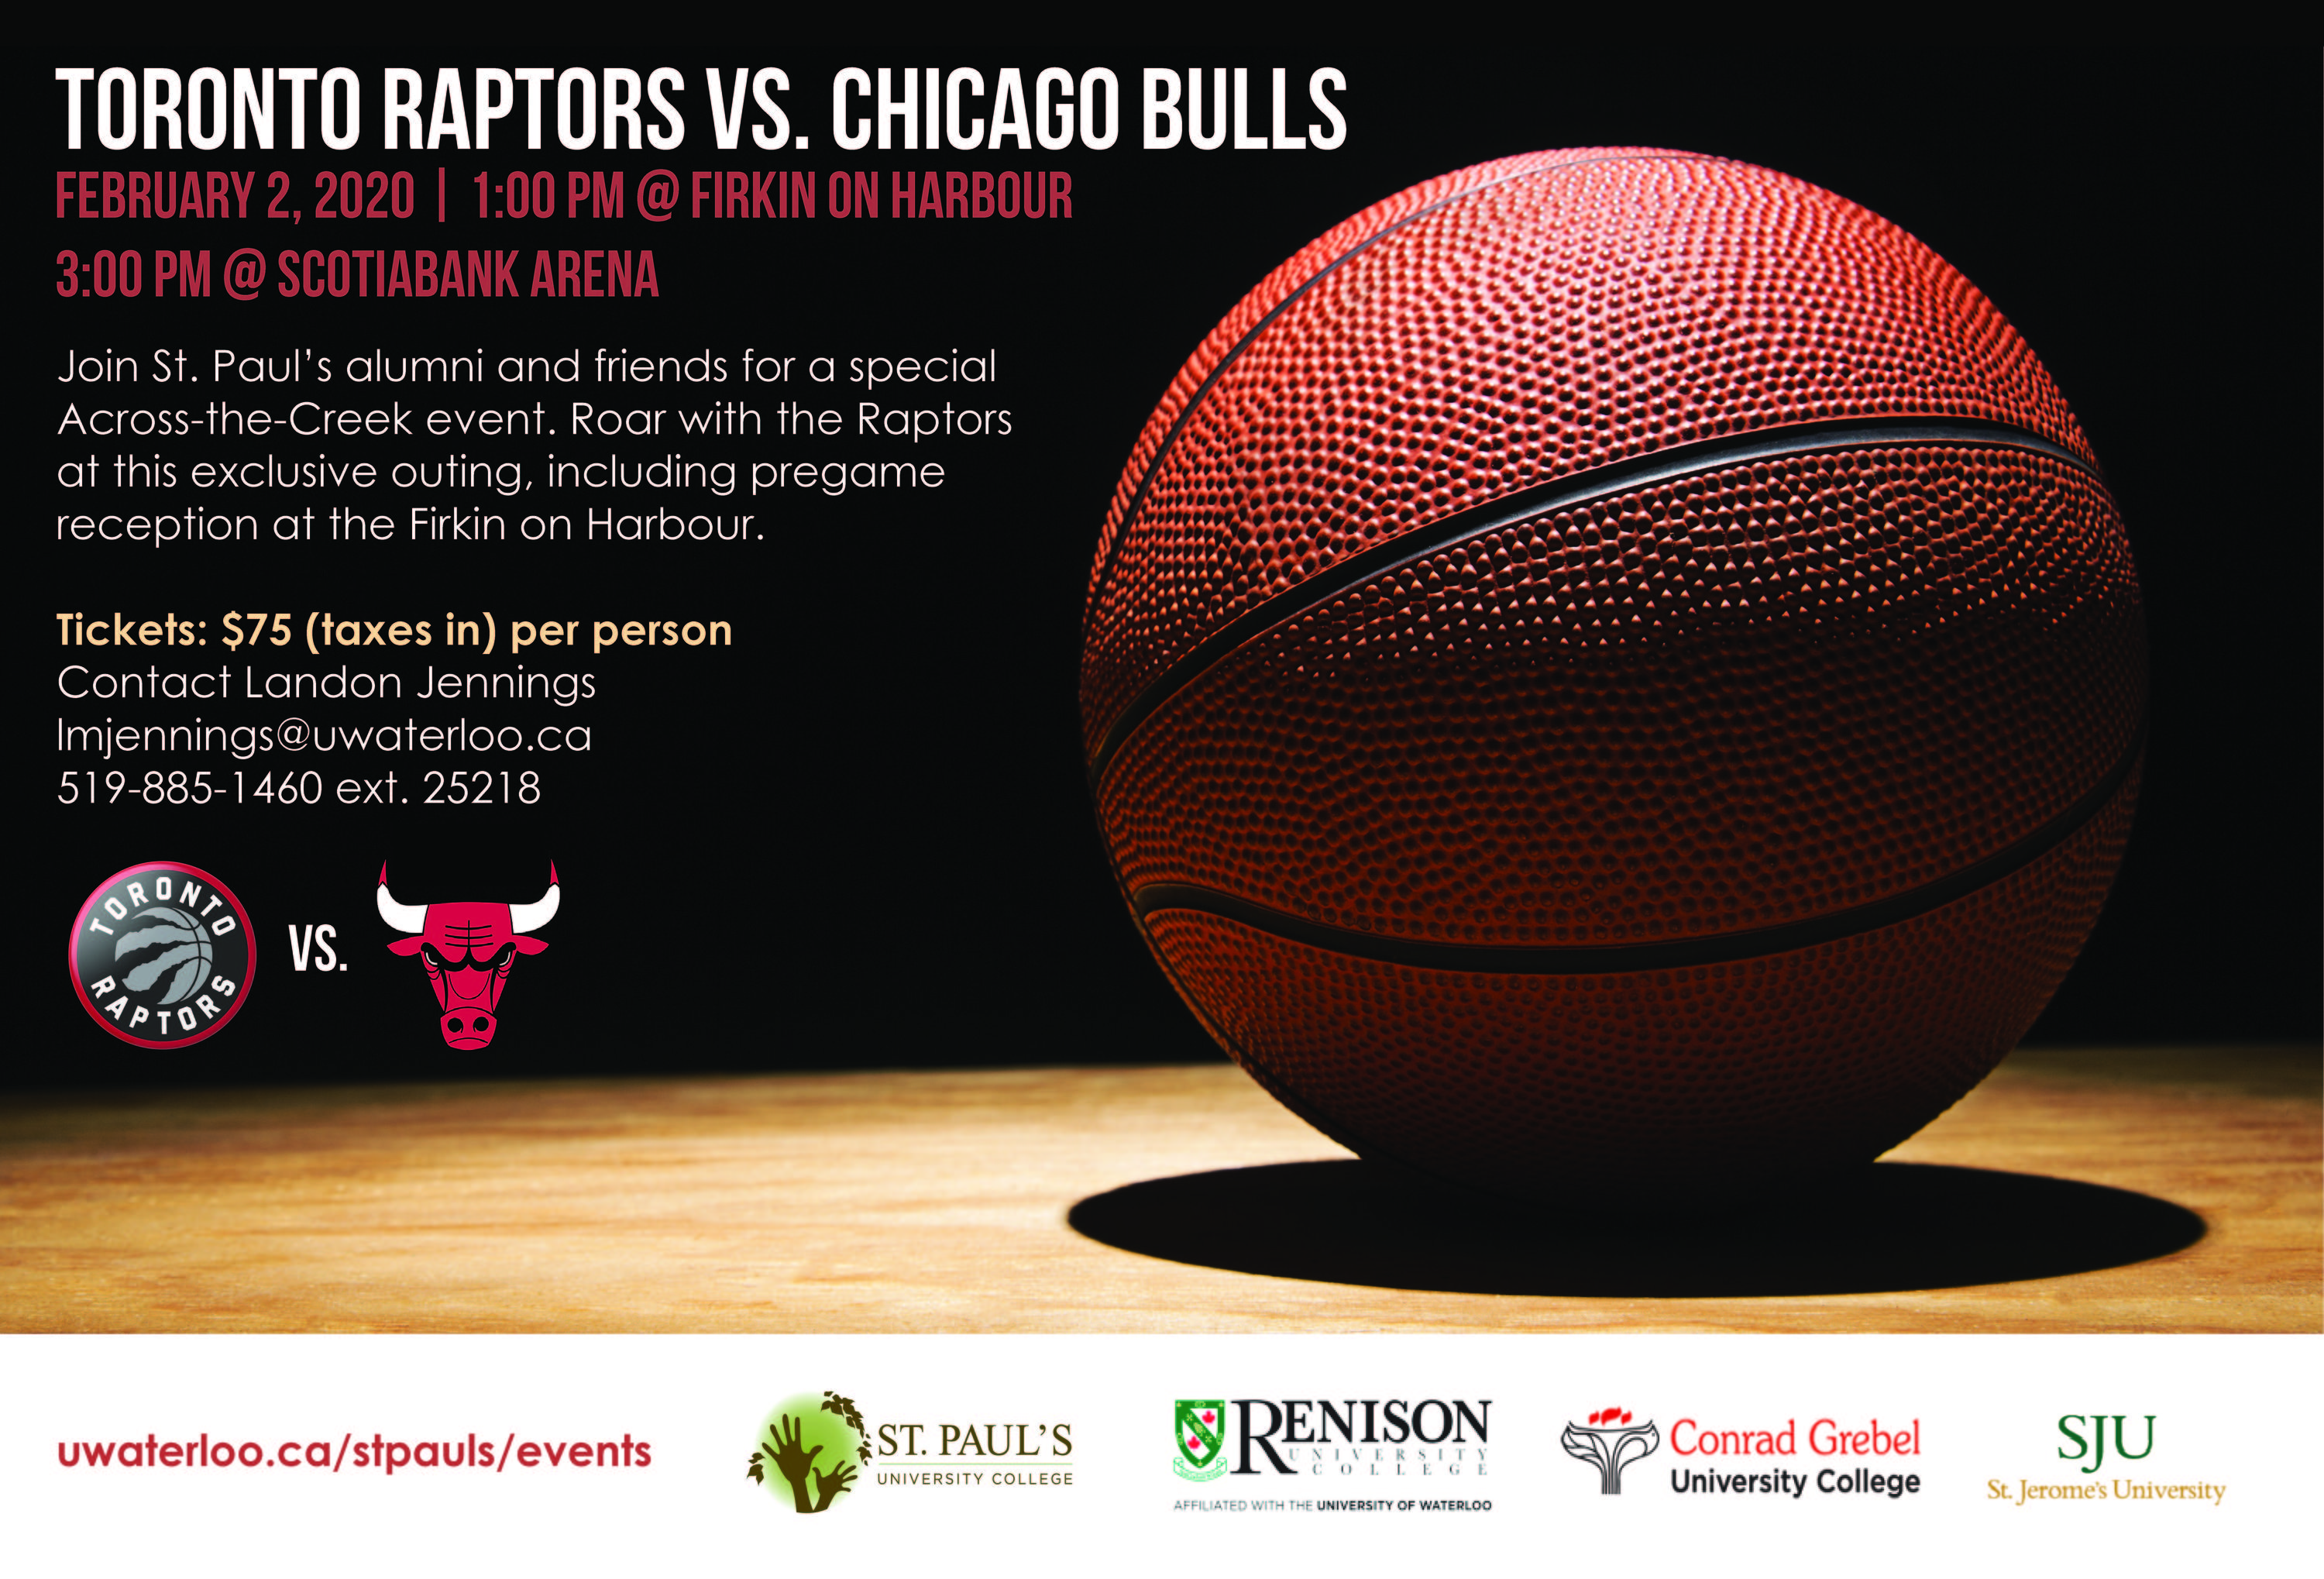 event promotional flyer with image of a basketball and the logos of the Chicago Bulls and Toronto Raptors